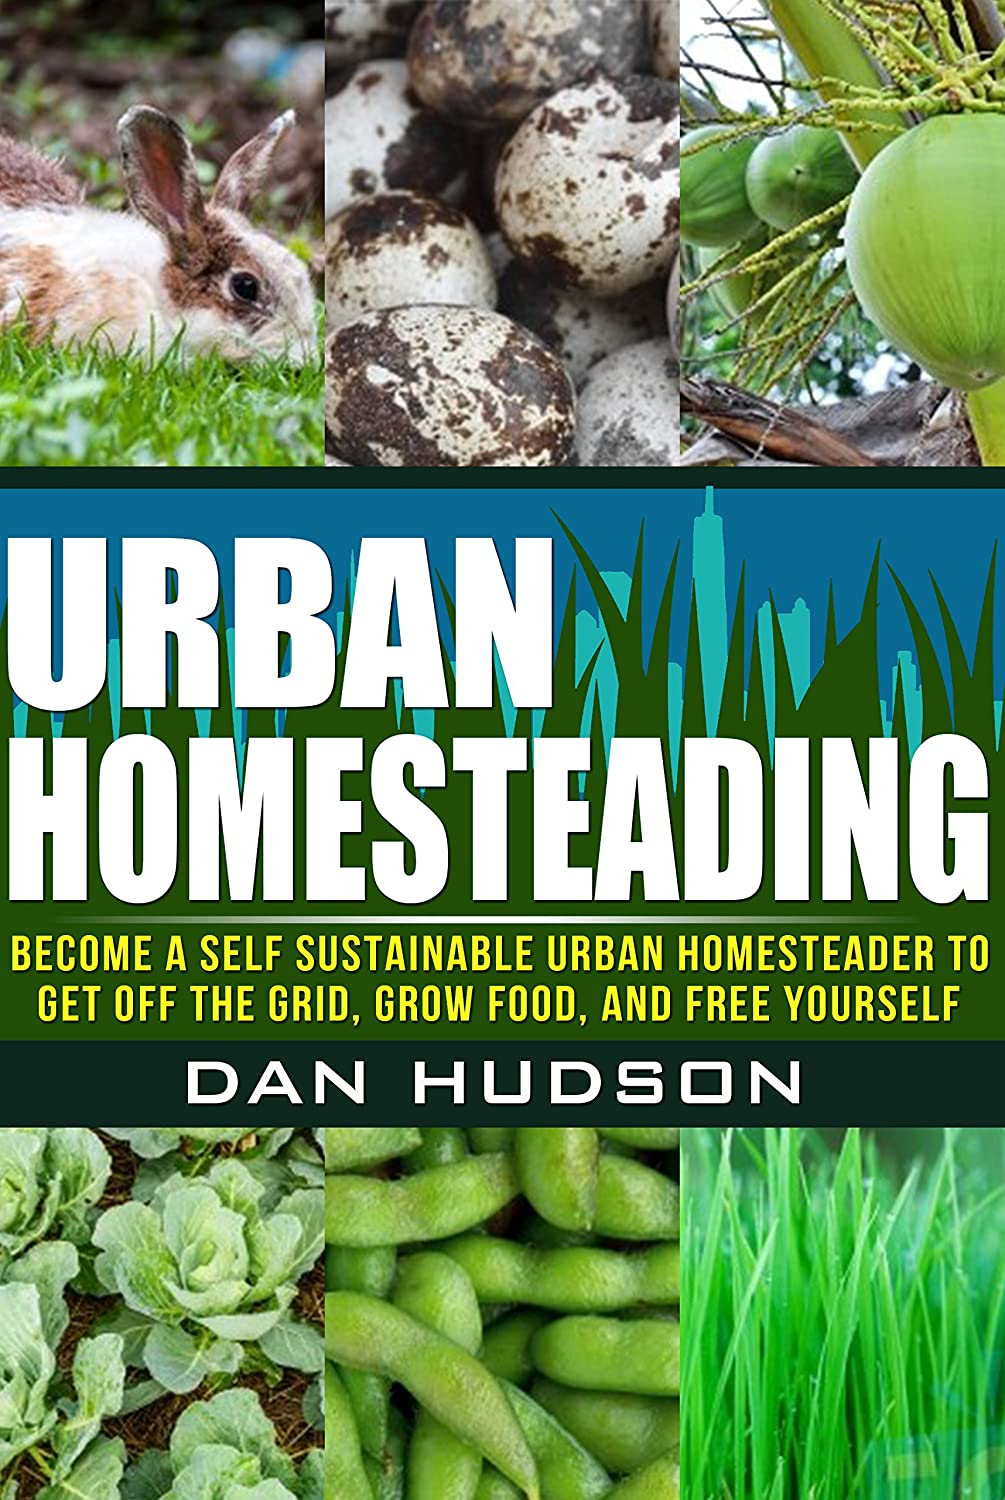 http://www.amazon.com/Urban-Homesteading-Sustainable-Homesteader-Yourself-ebook/dp/B00M2KSSE6/ref=as_sl_pc_ss_til?tag=lettfromahome-20&linkCode=w01&linkId=&creativeASIN=B00M2KSSE6